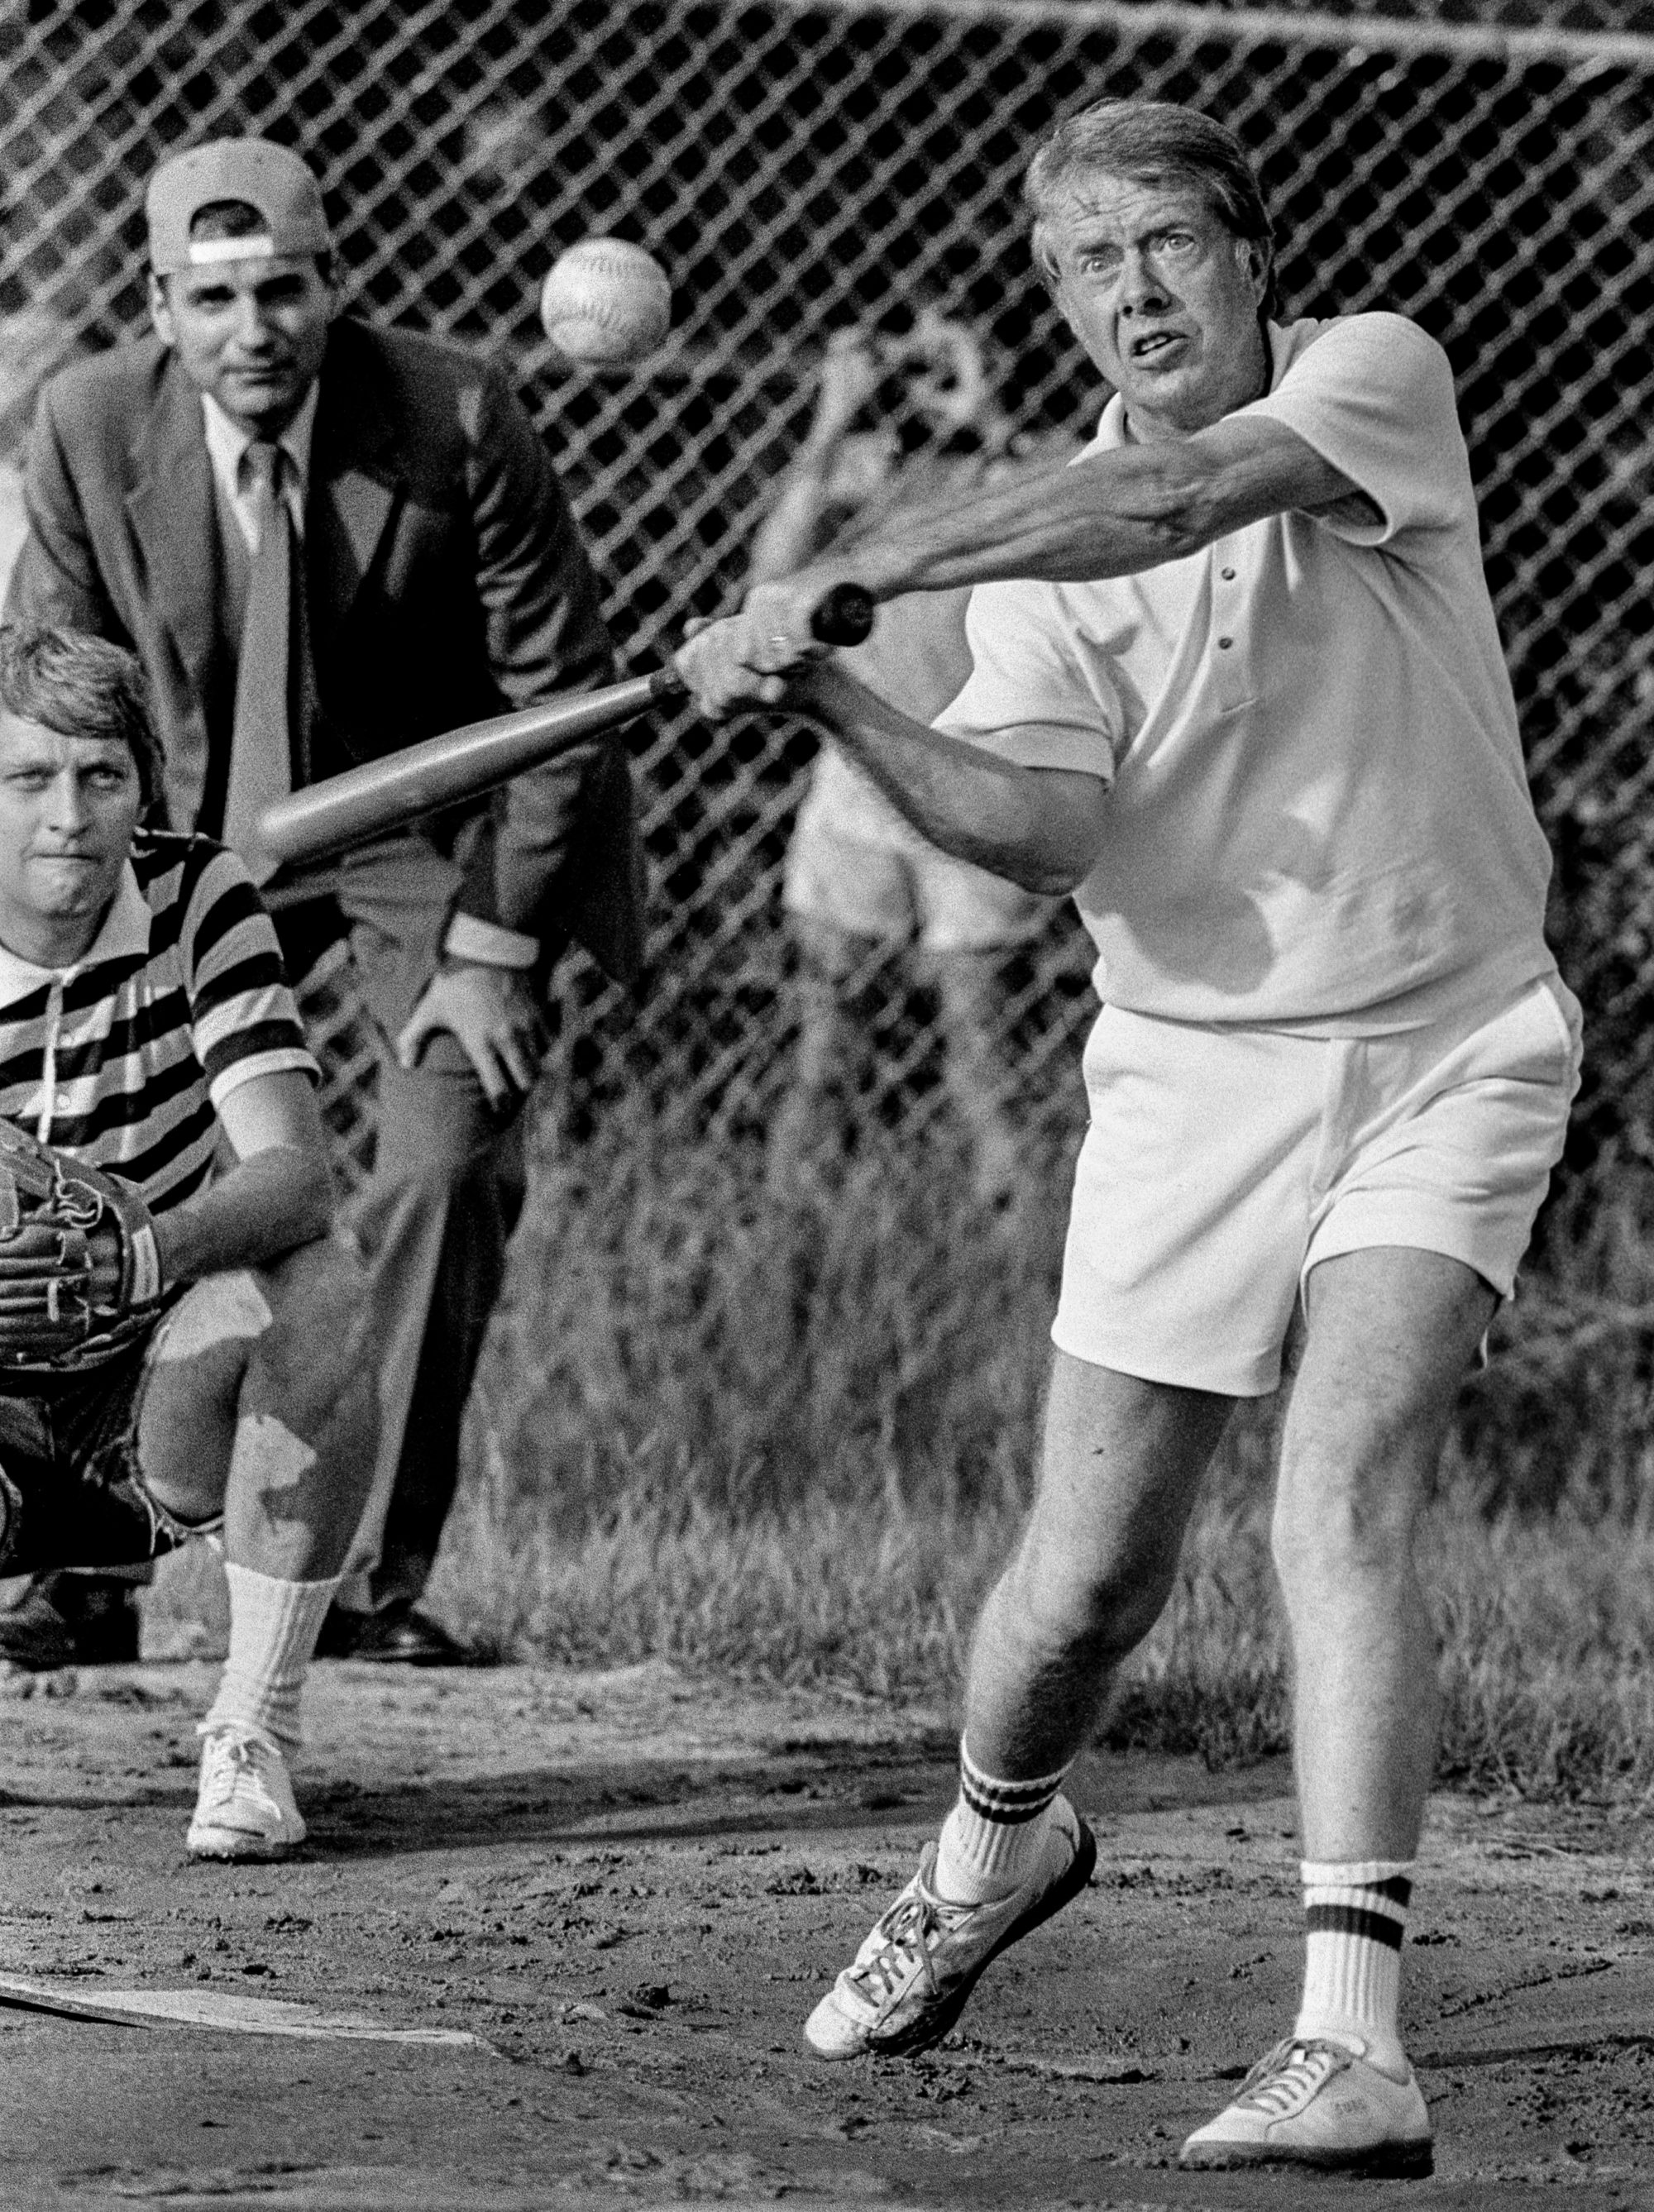 Carter at bat during a softball game at Plains High School. The umpire is consumer advocate and future five-time presidential candidate Ralph Nader the catcher - James Wooten of the New York Times.